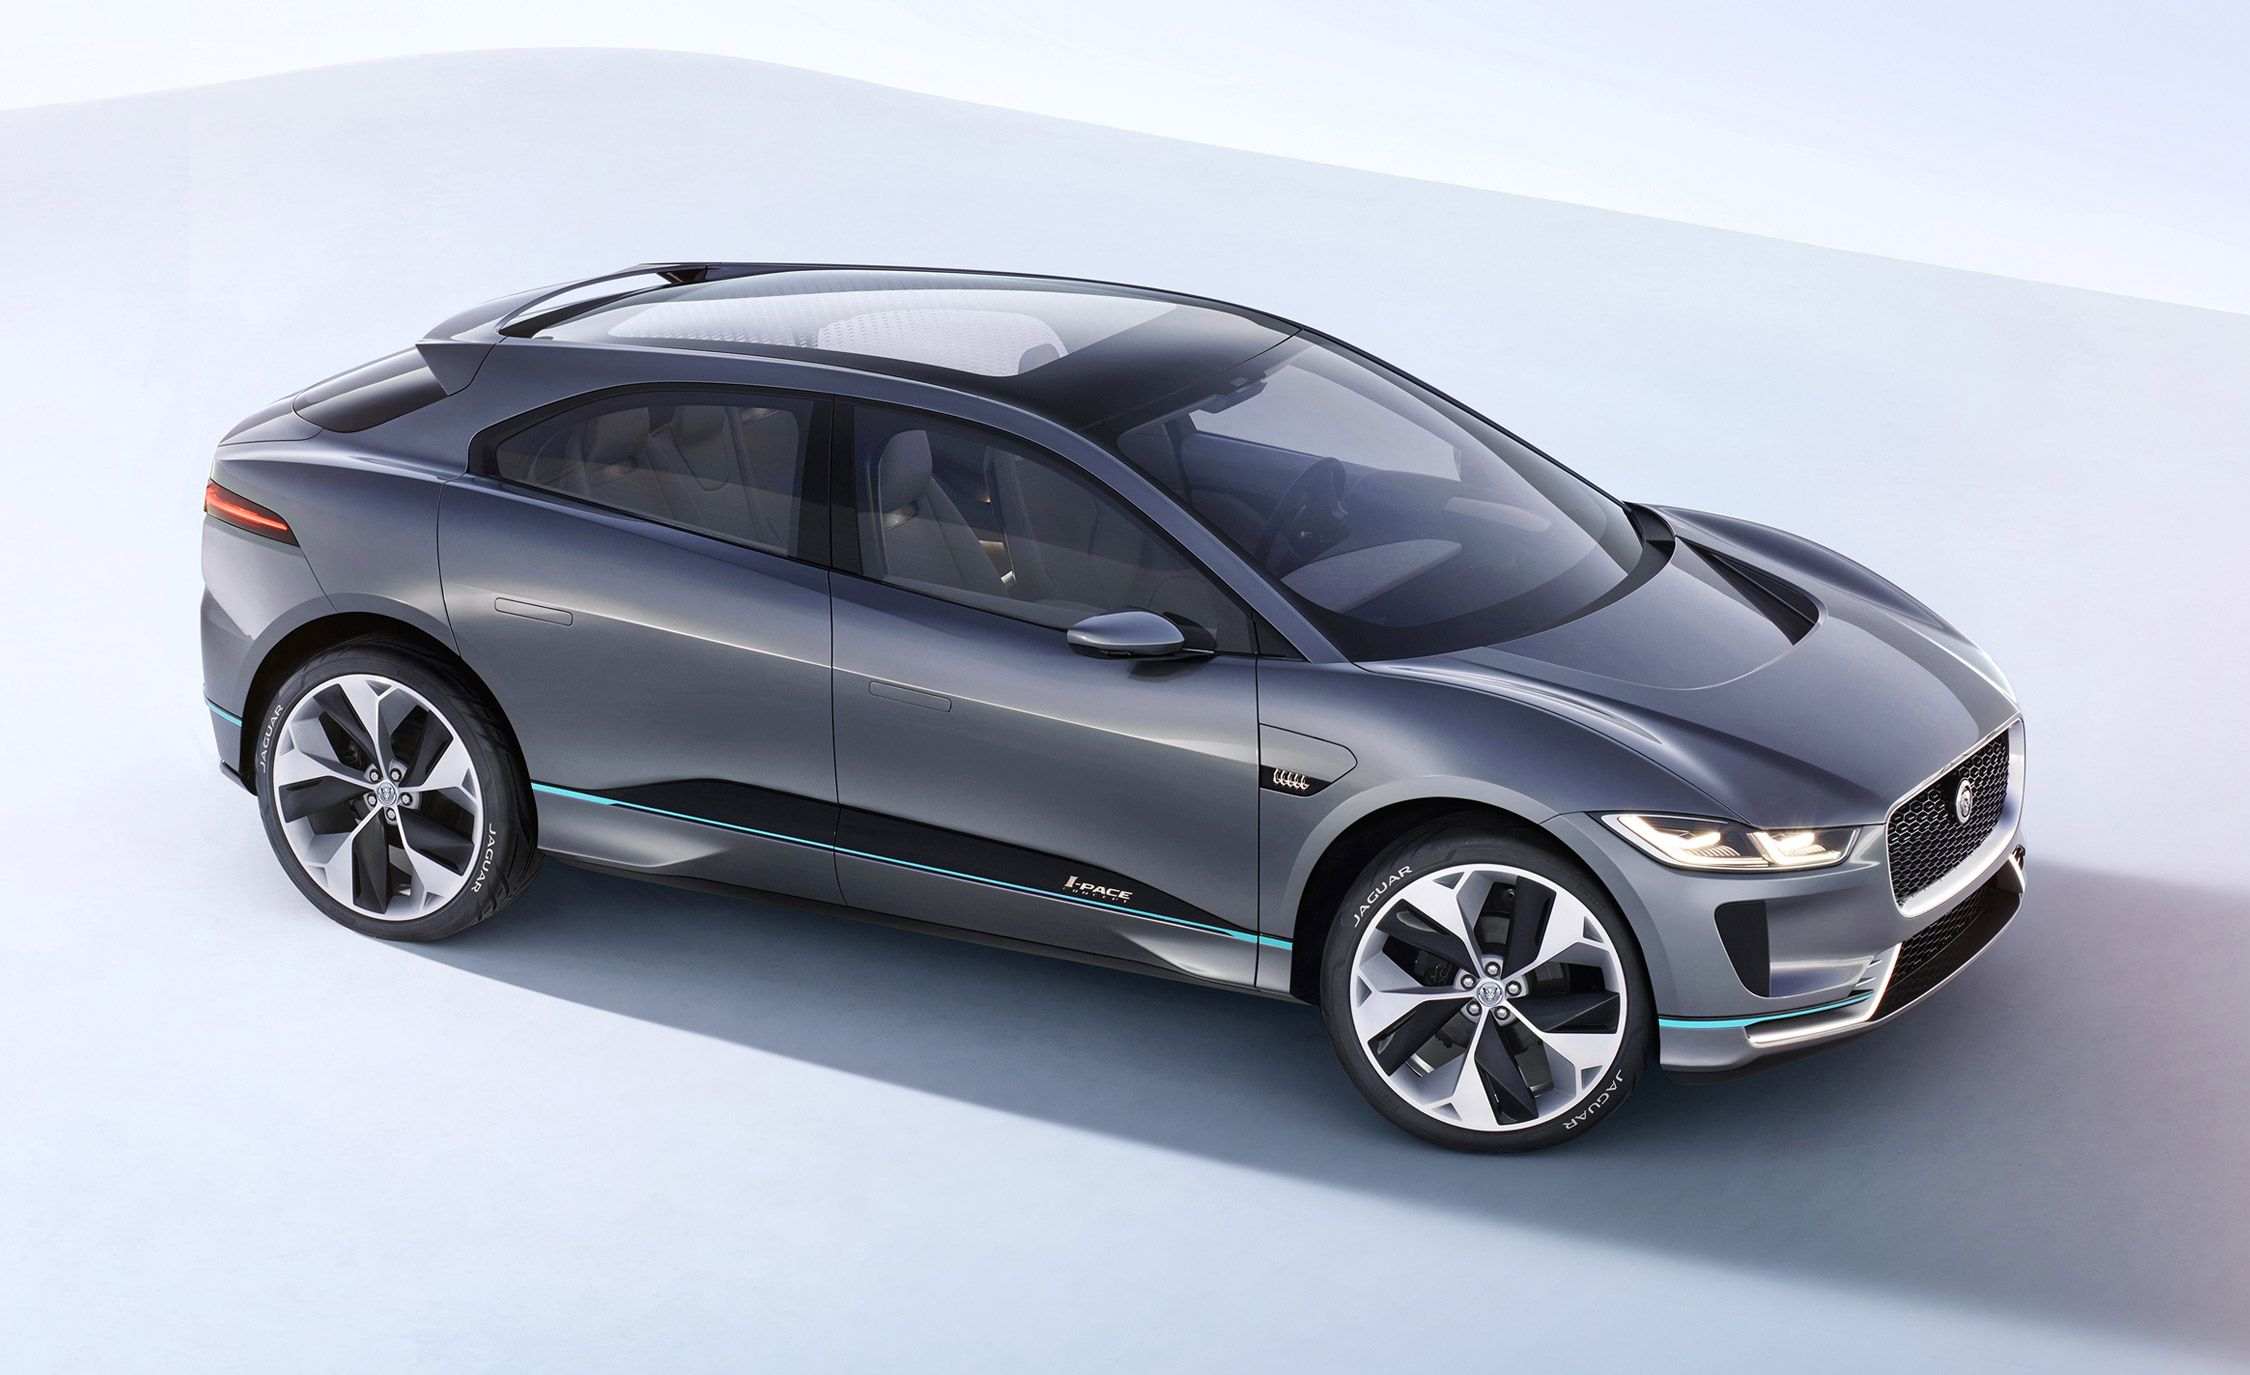 2018 jaguar jeep. Brilliant Jaguar The 2018 Jaguar IPace EV Is A Car Worth Waiting For  Feature And  Driver In Jaguar Jeep